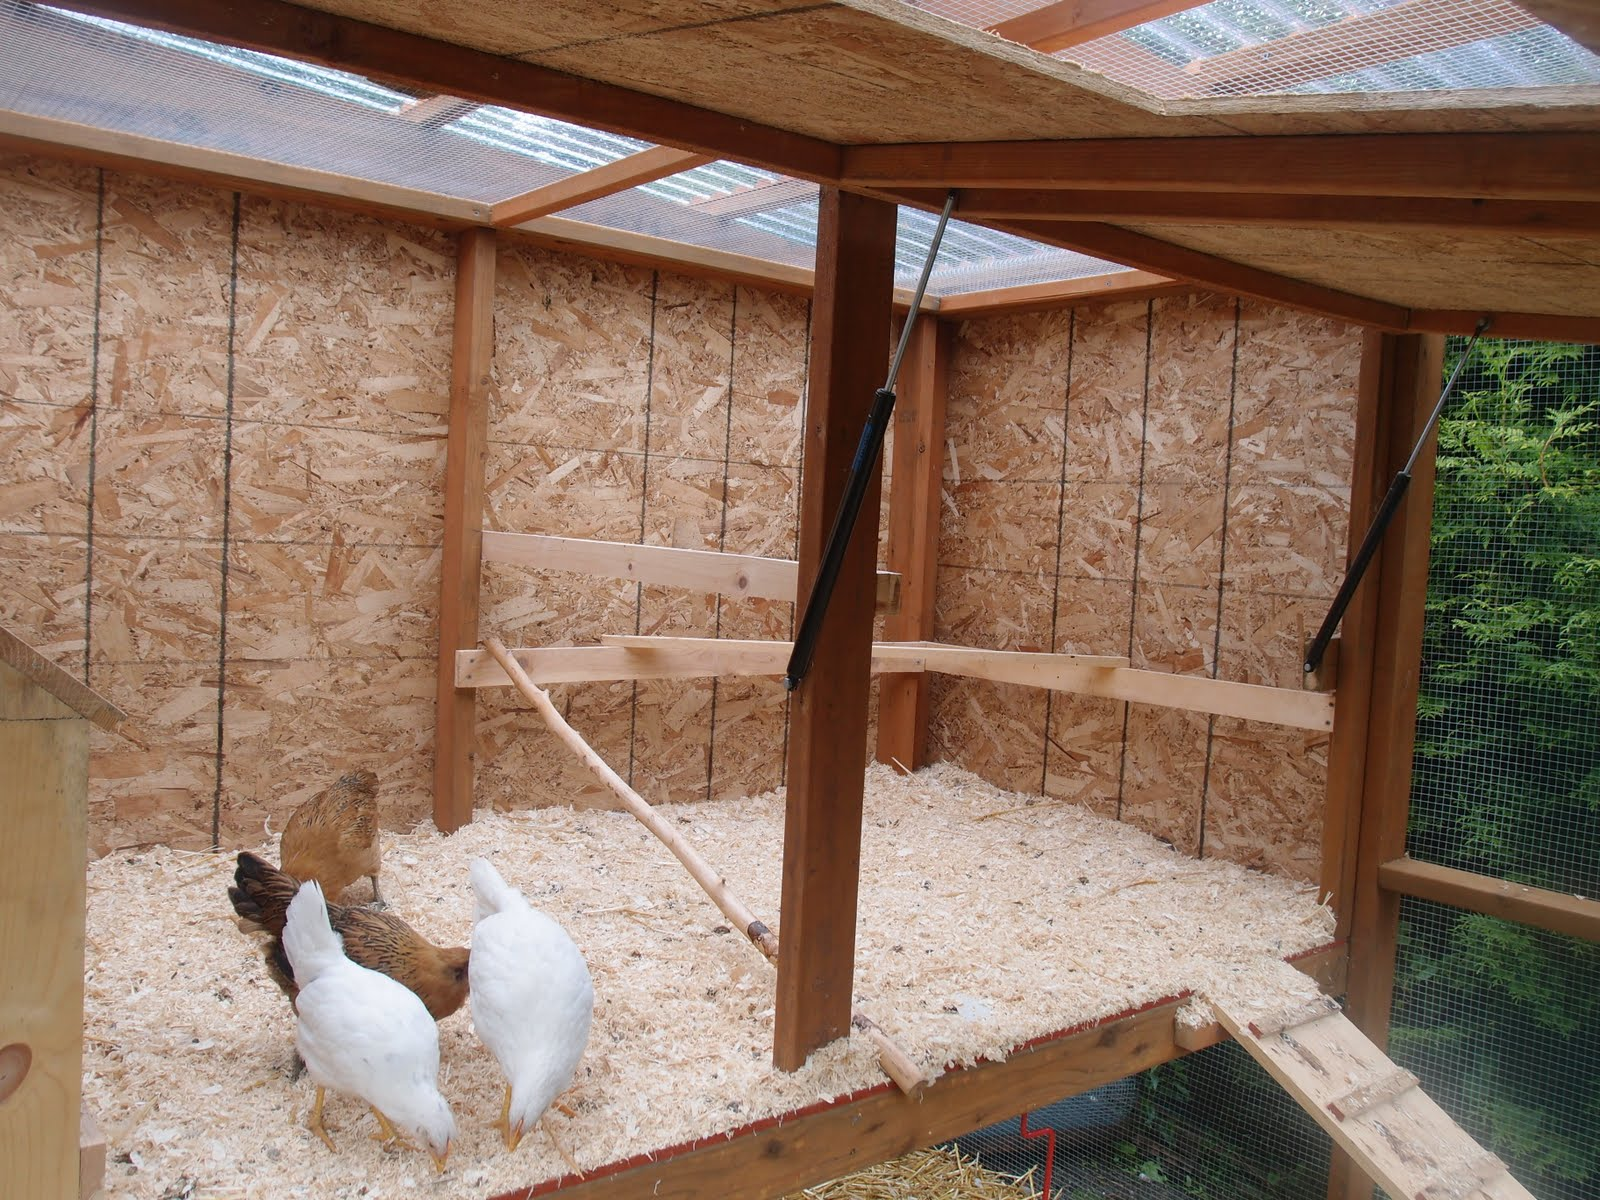 The chicken coop is done enough northwest edible life for Chicken coop interior designs